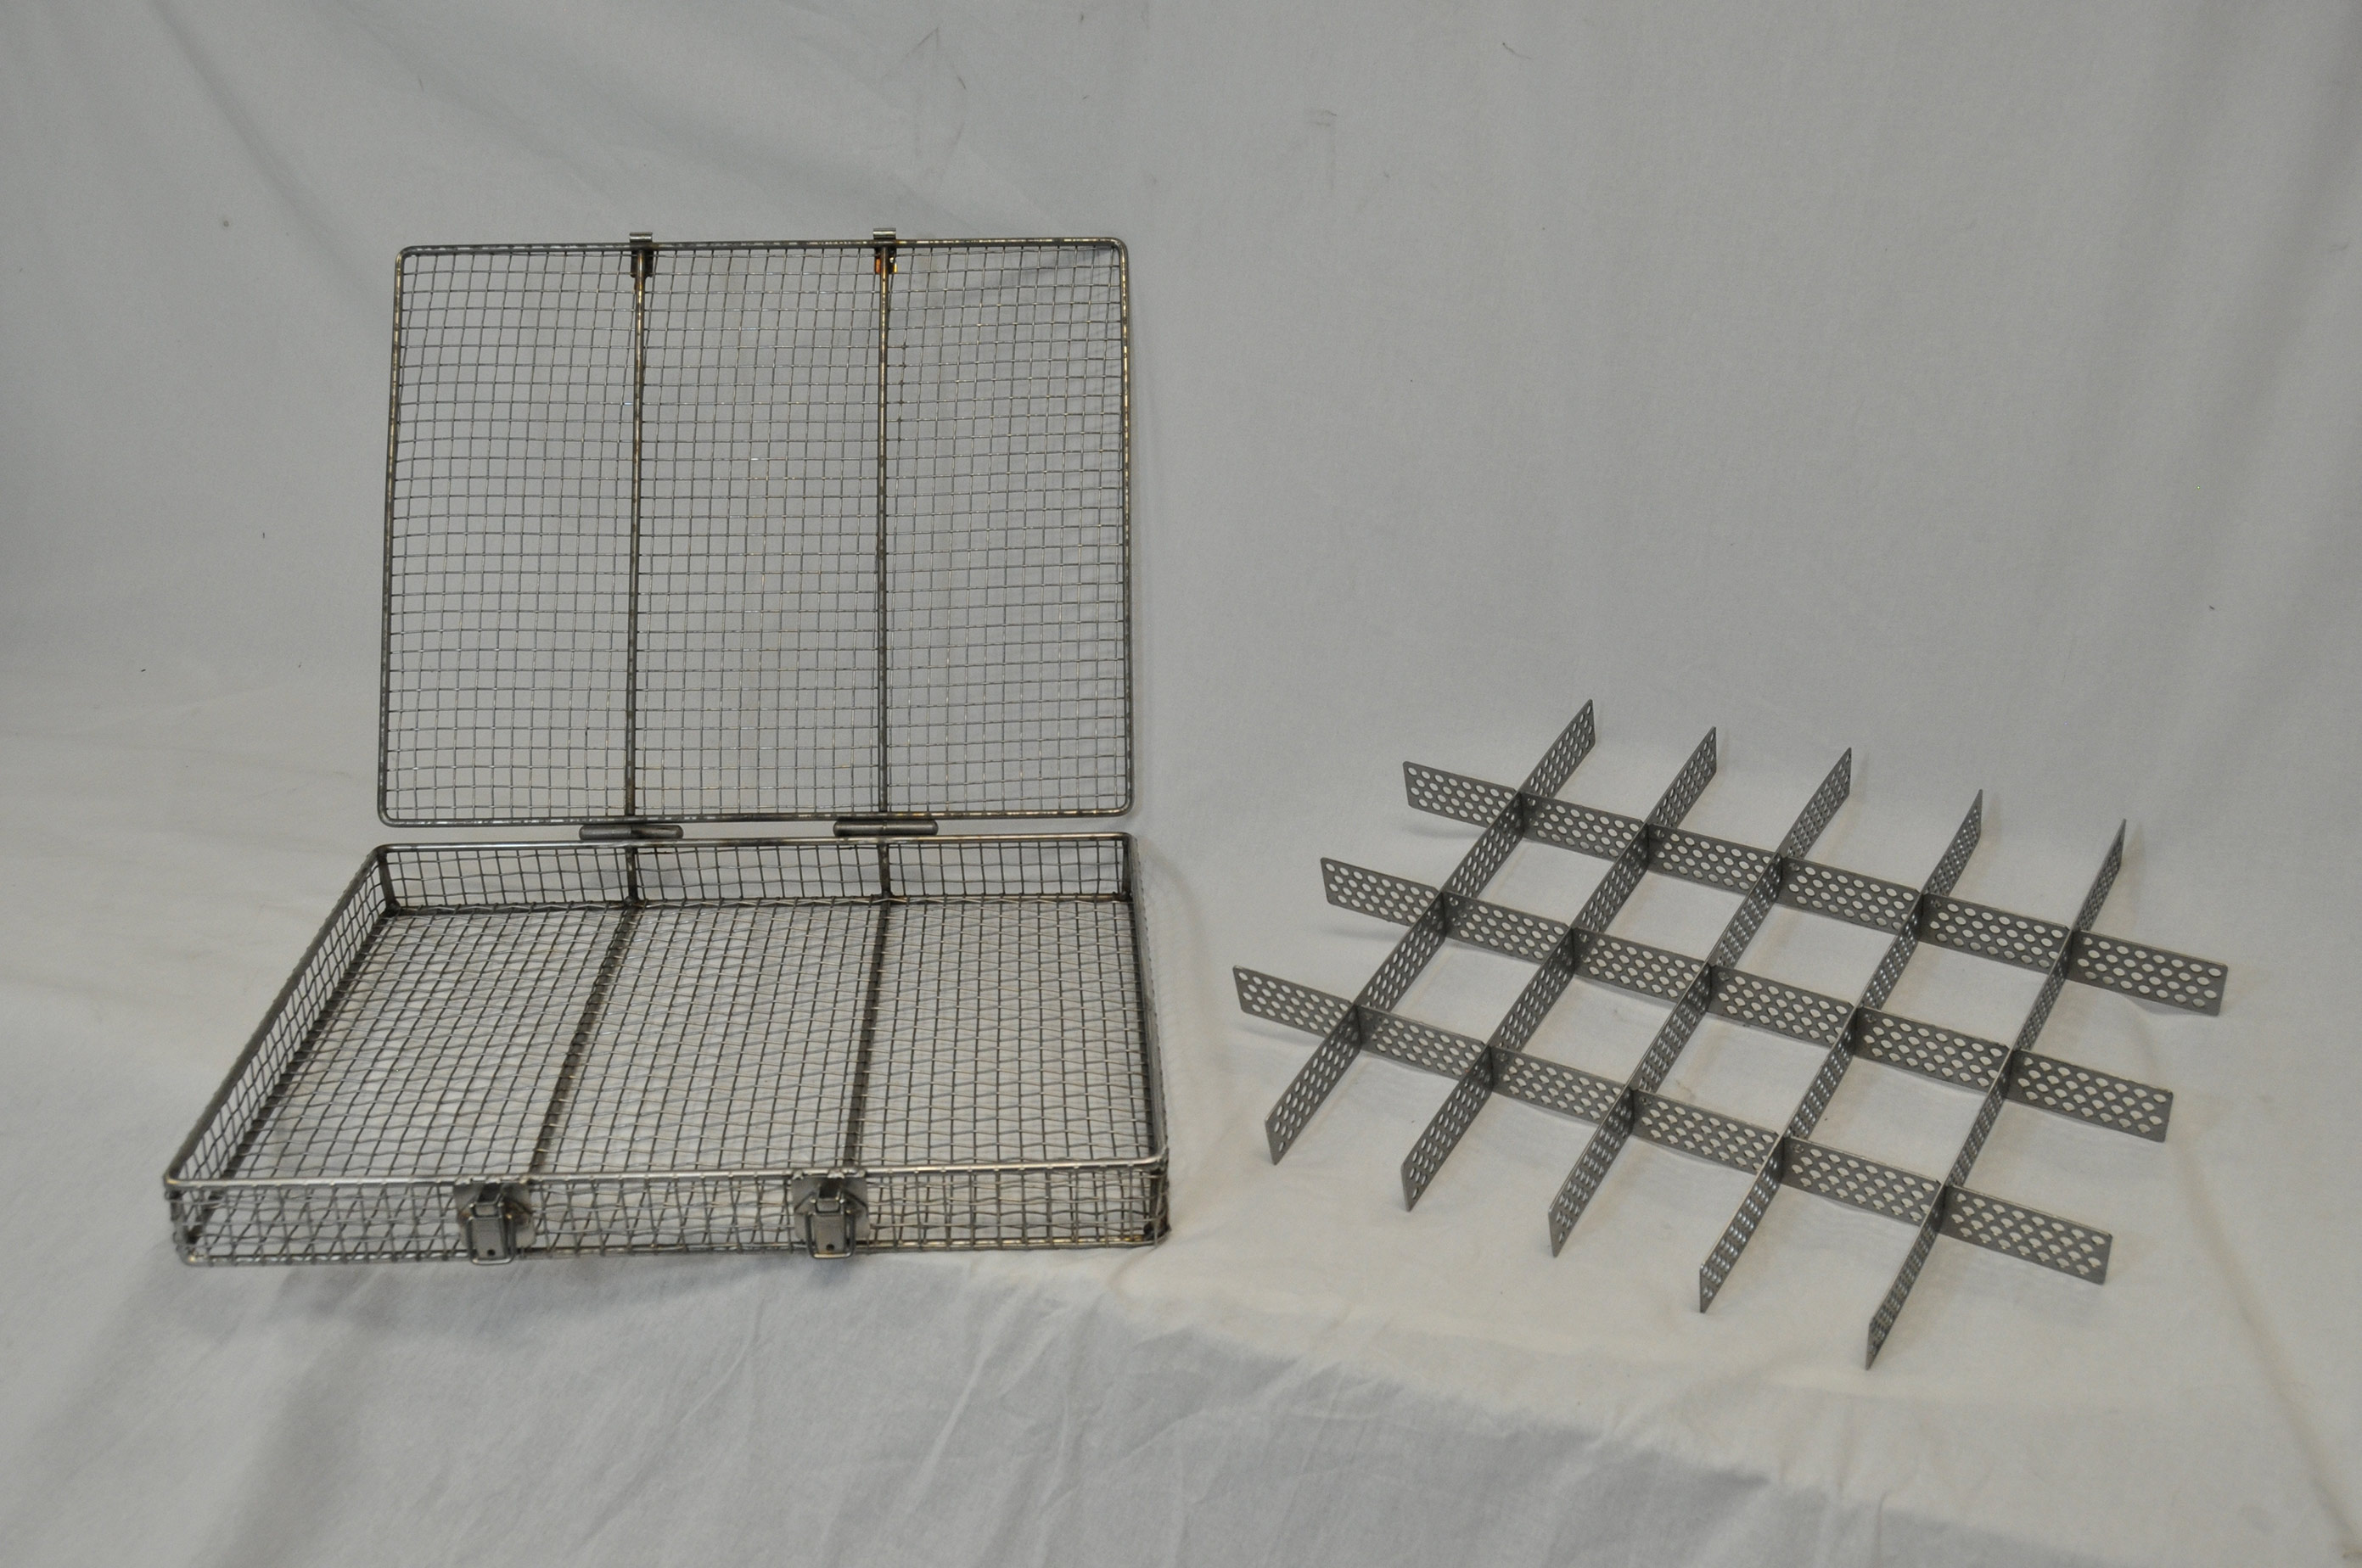 This stainless steel wire basket features both a lid and a removable divider so you can use it for both large and small parts as needed.